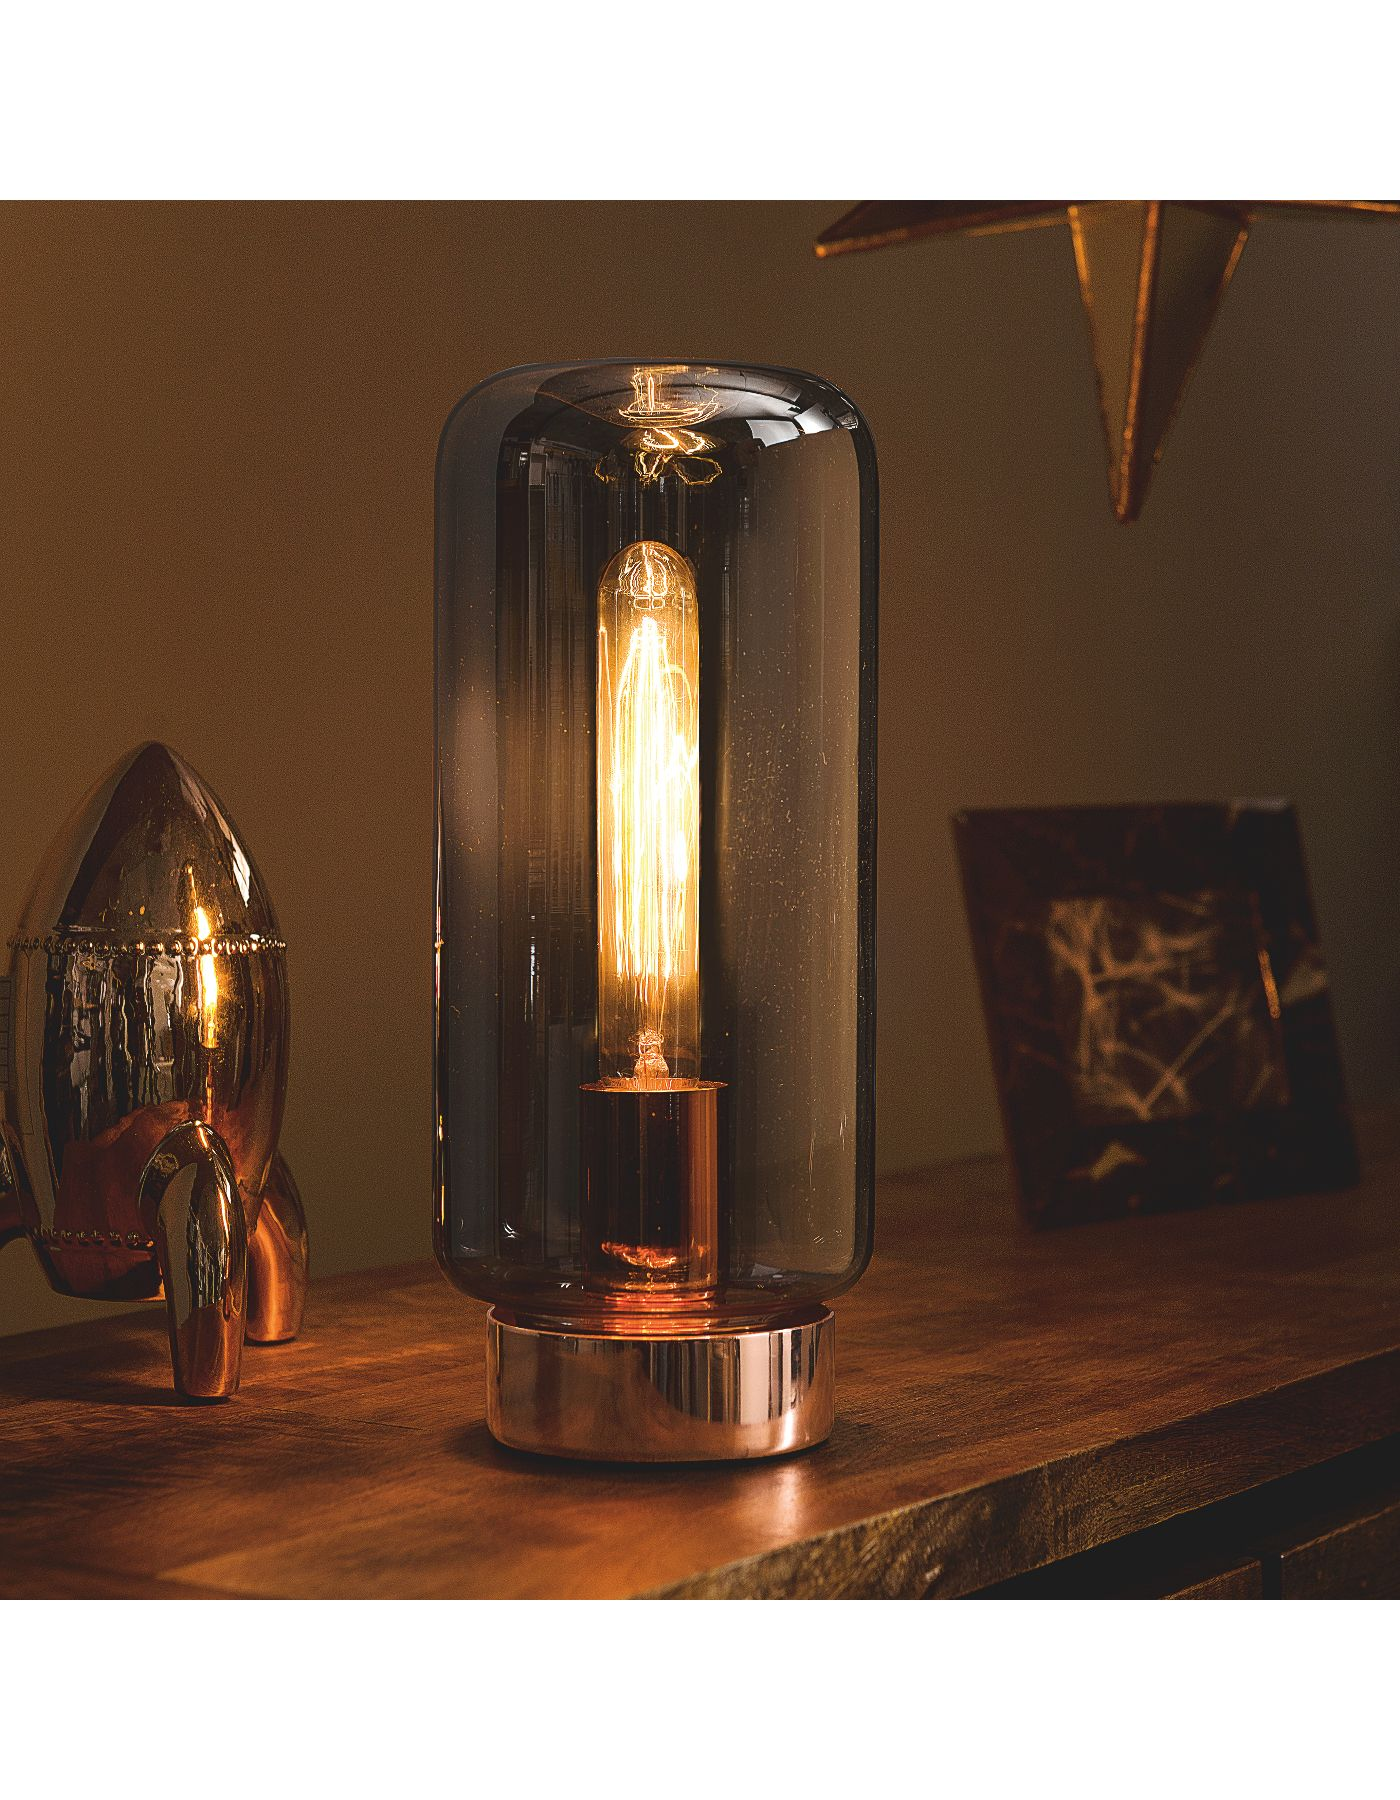 Unusual pendant lamps inspired by medusas digsdigs - George Home Copper Effect And Glass Table Lamp Lighting Asda Direct